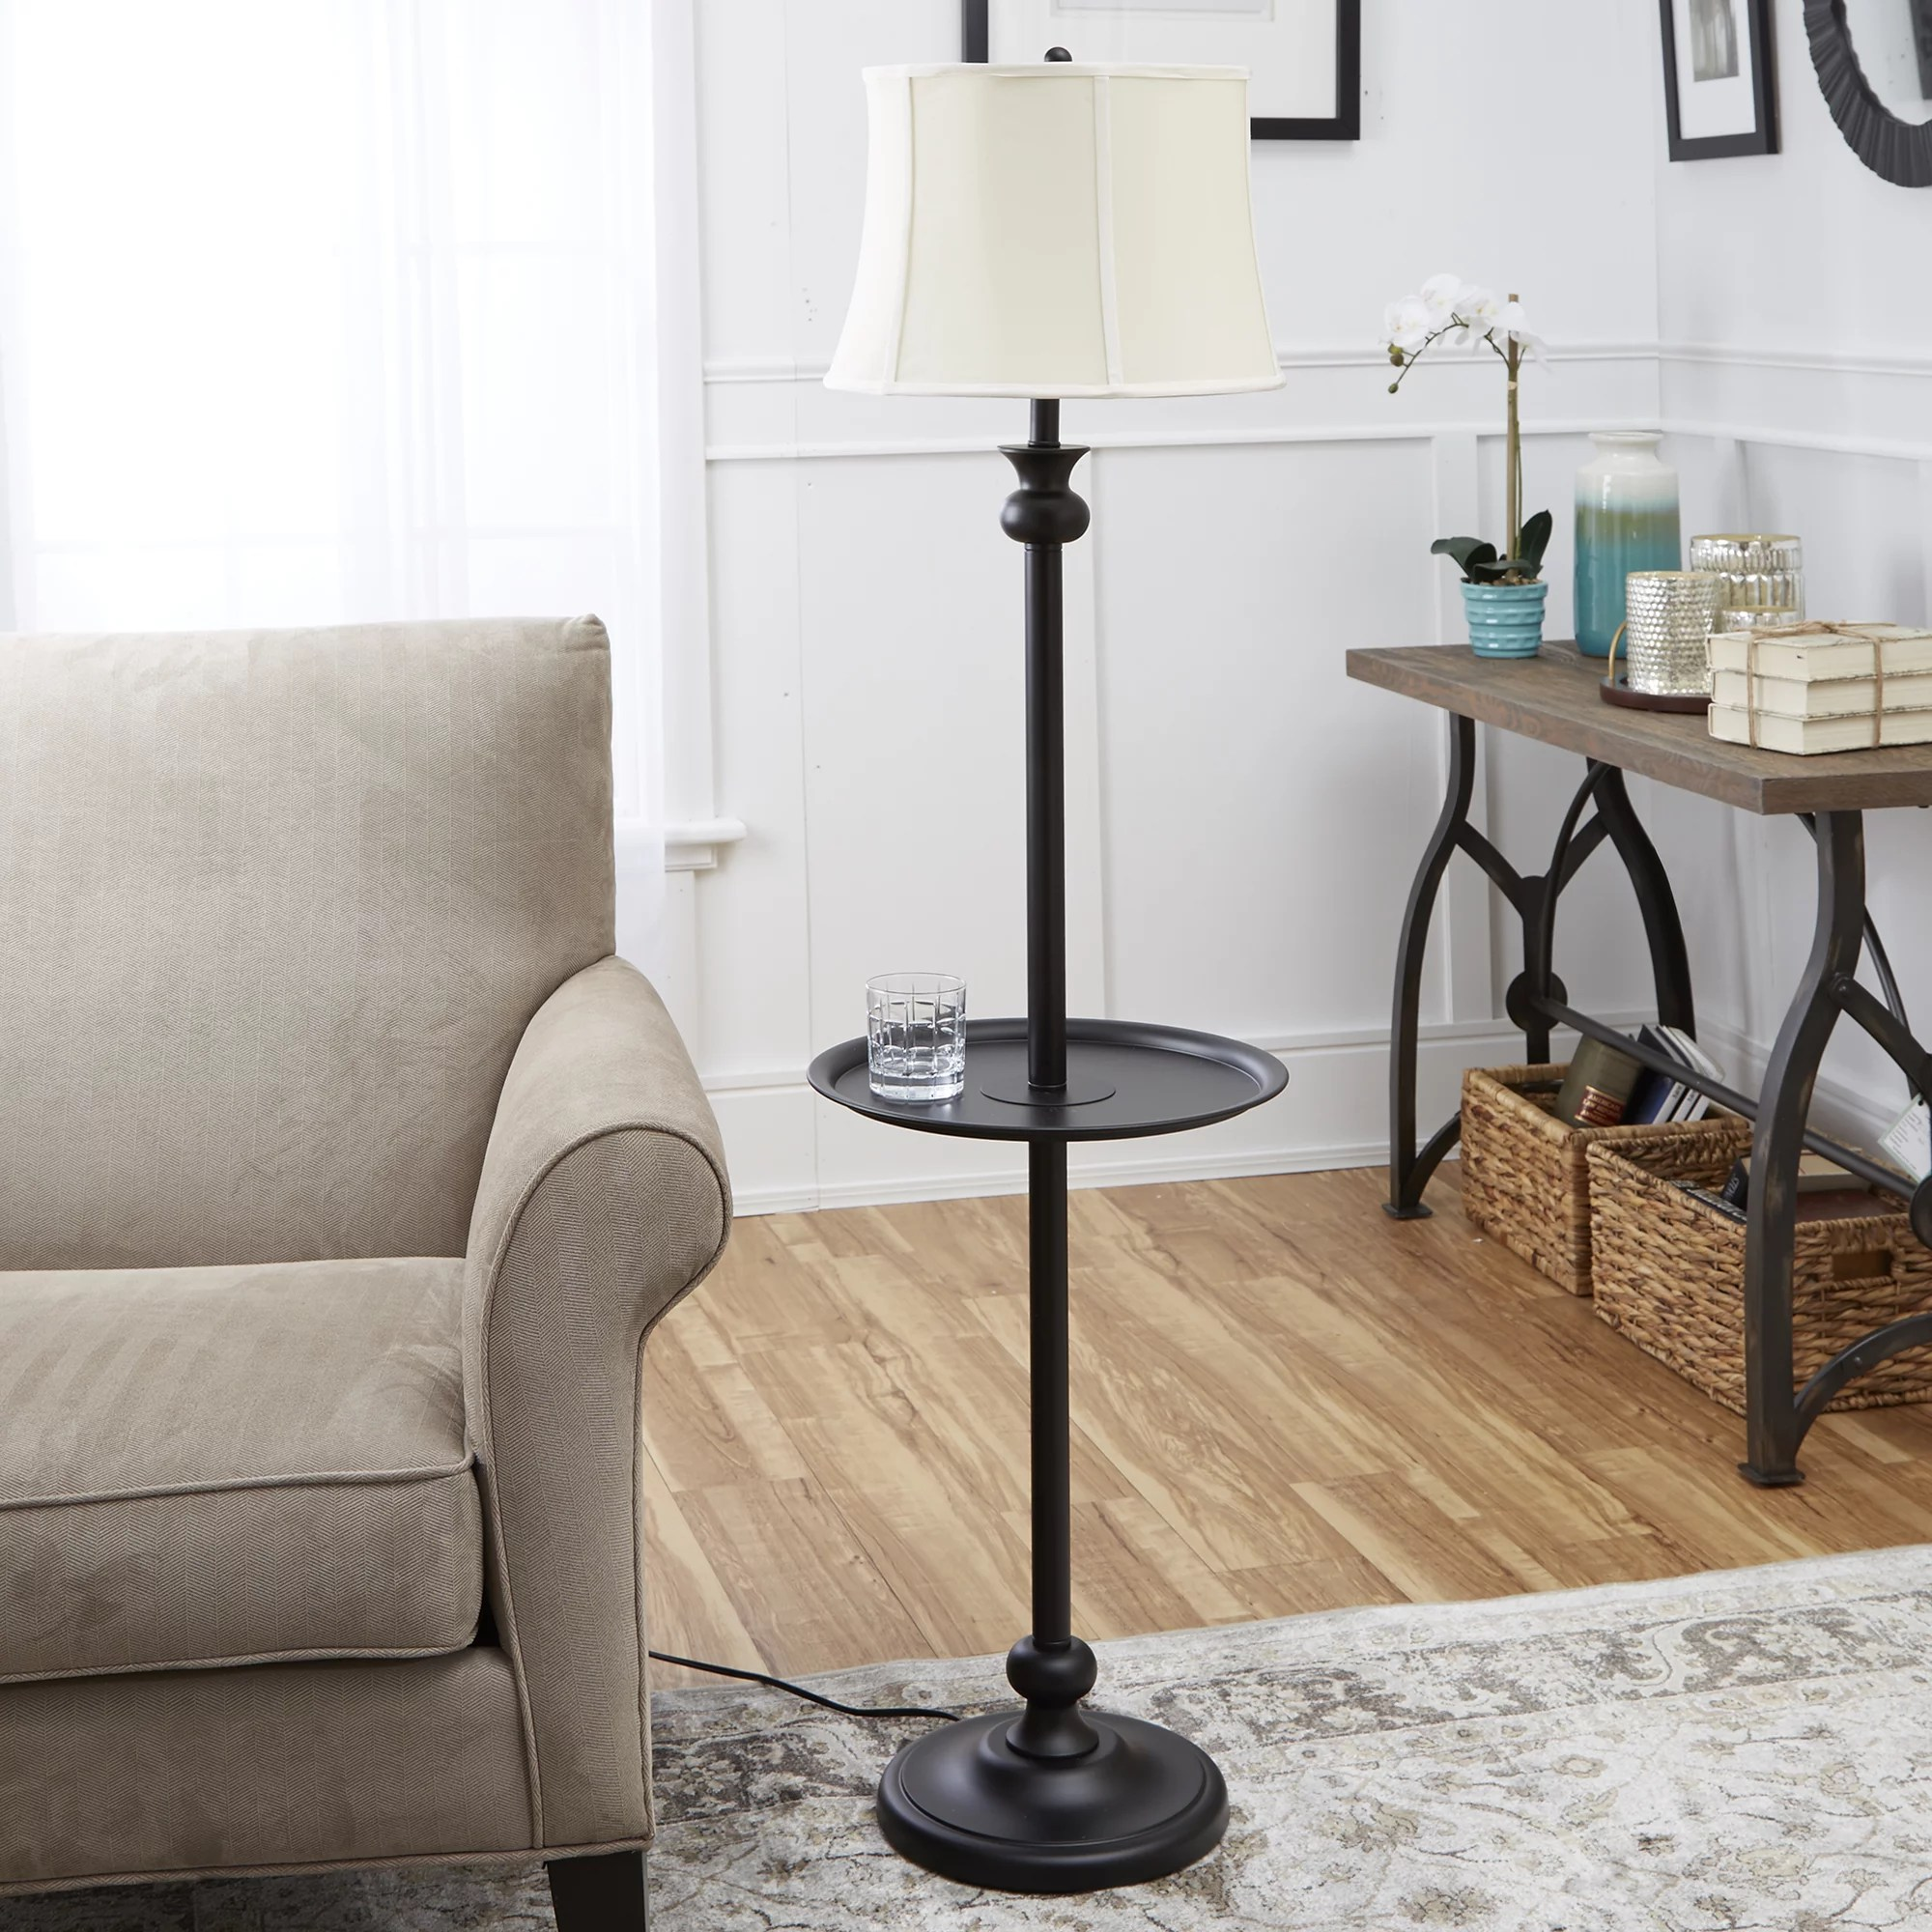 Floor Table Lamps Mainstays 72 Combo Floor Lamp With Adjustable Reading Lamp Brown